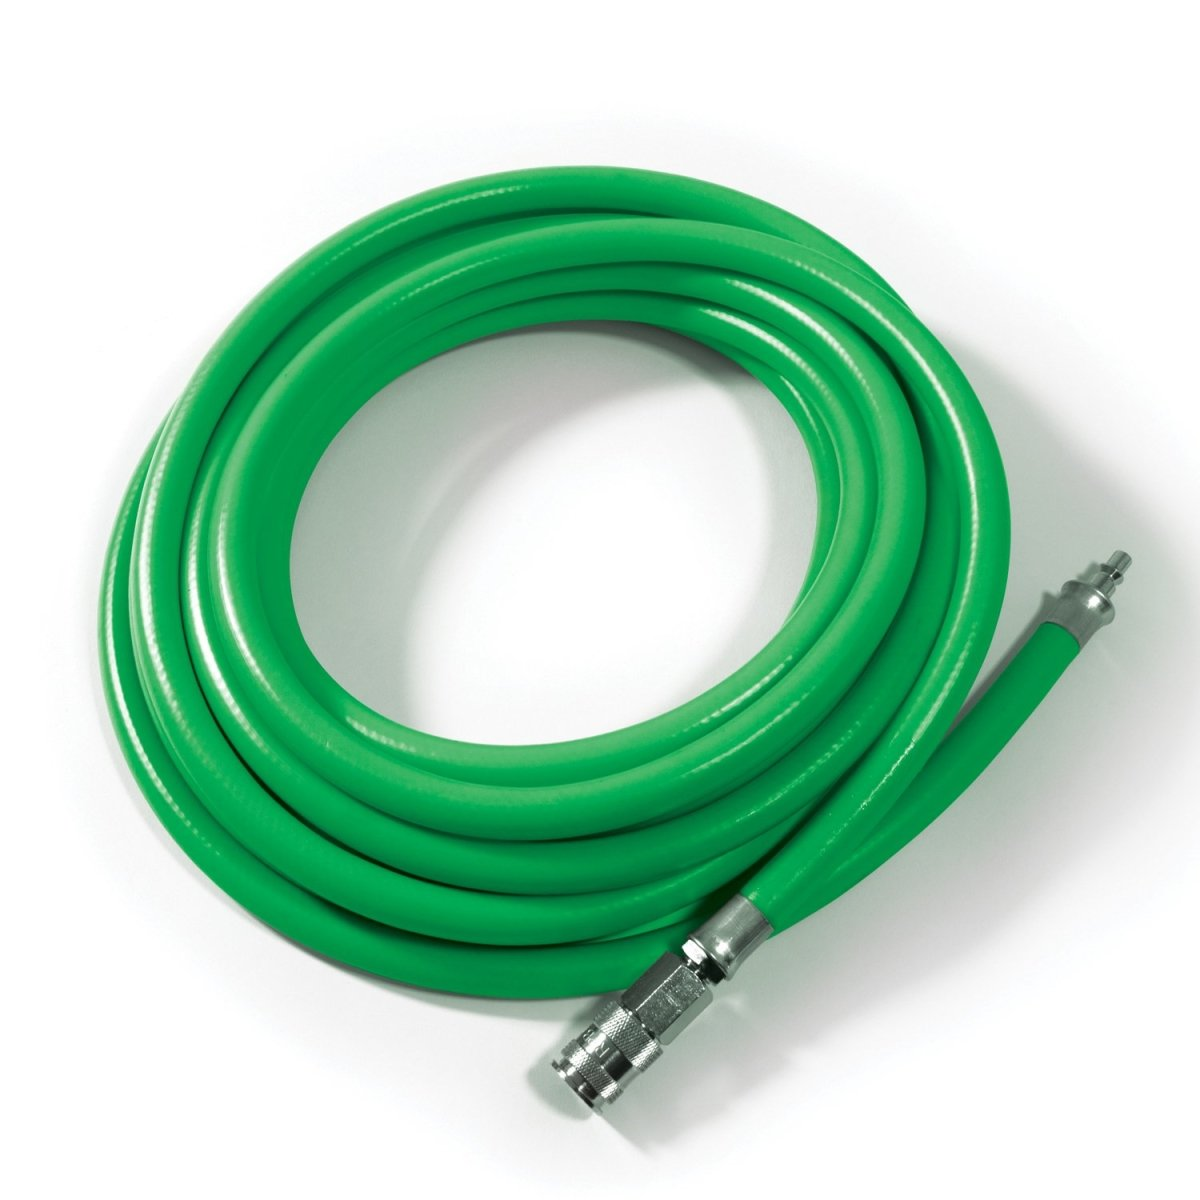 Supplied Breathing Air Lines - Air Supply Hoses for Supplied Air Respirators - RPB Safety - X1 Safety